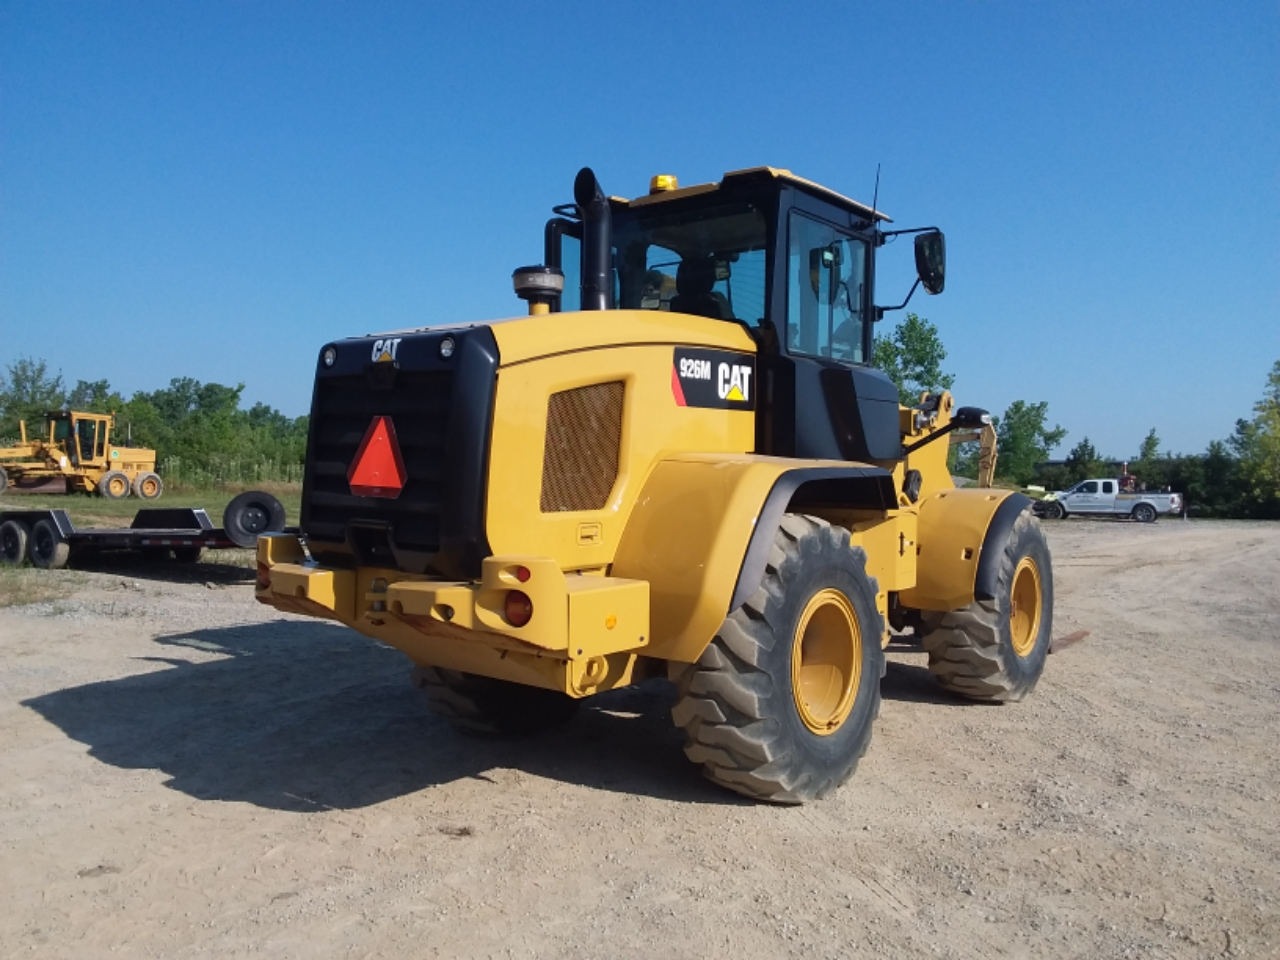 2016 Caterpillar 926M Image 9